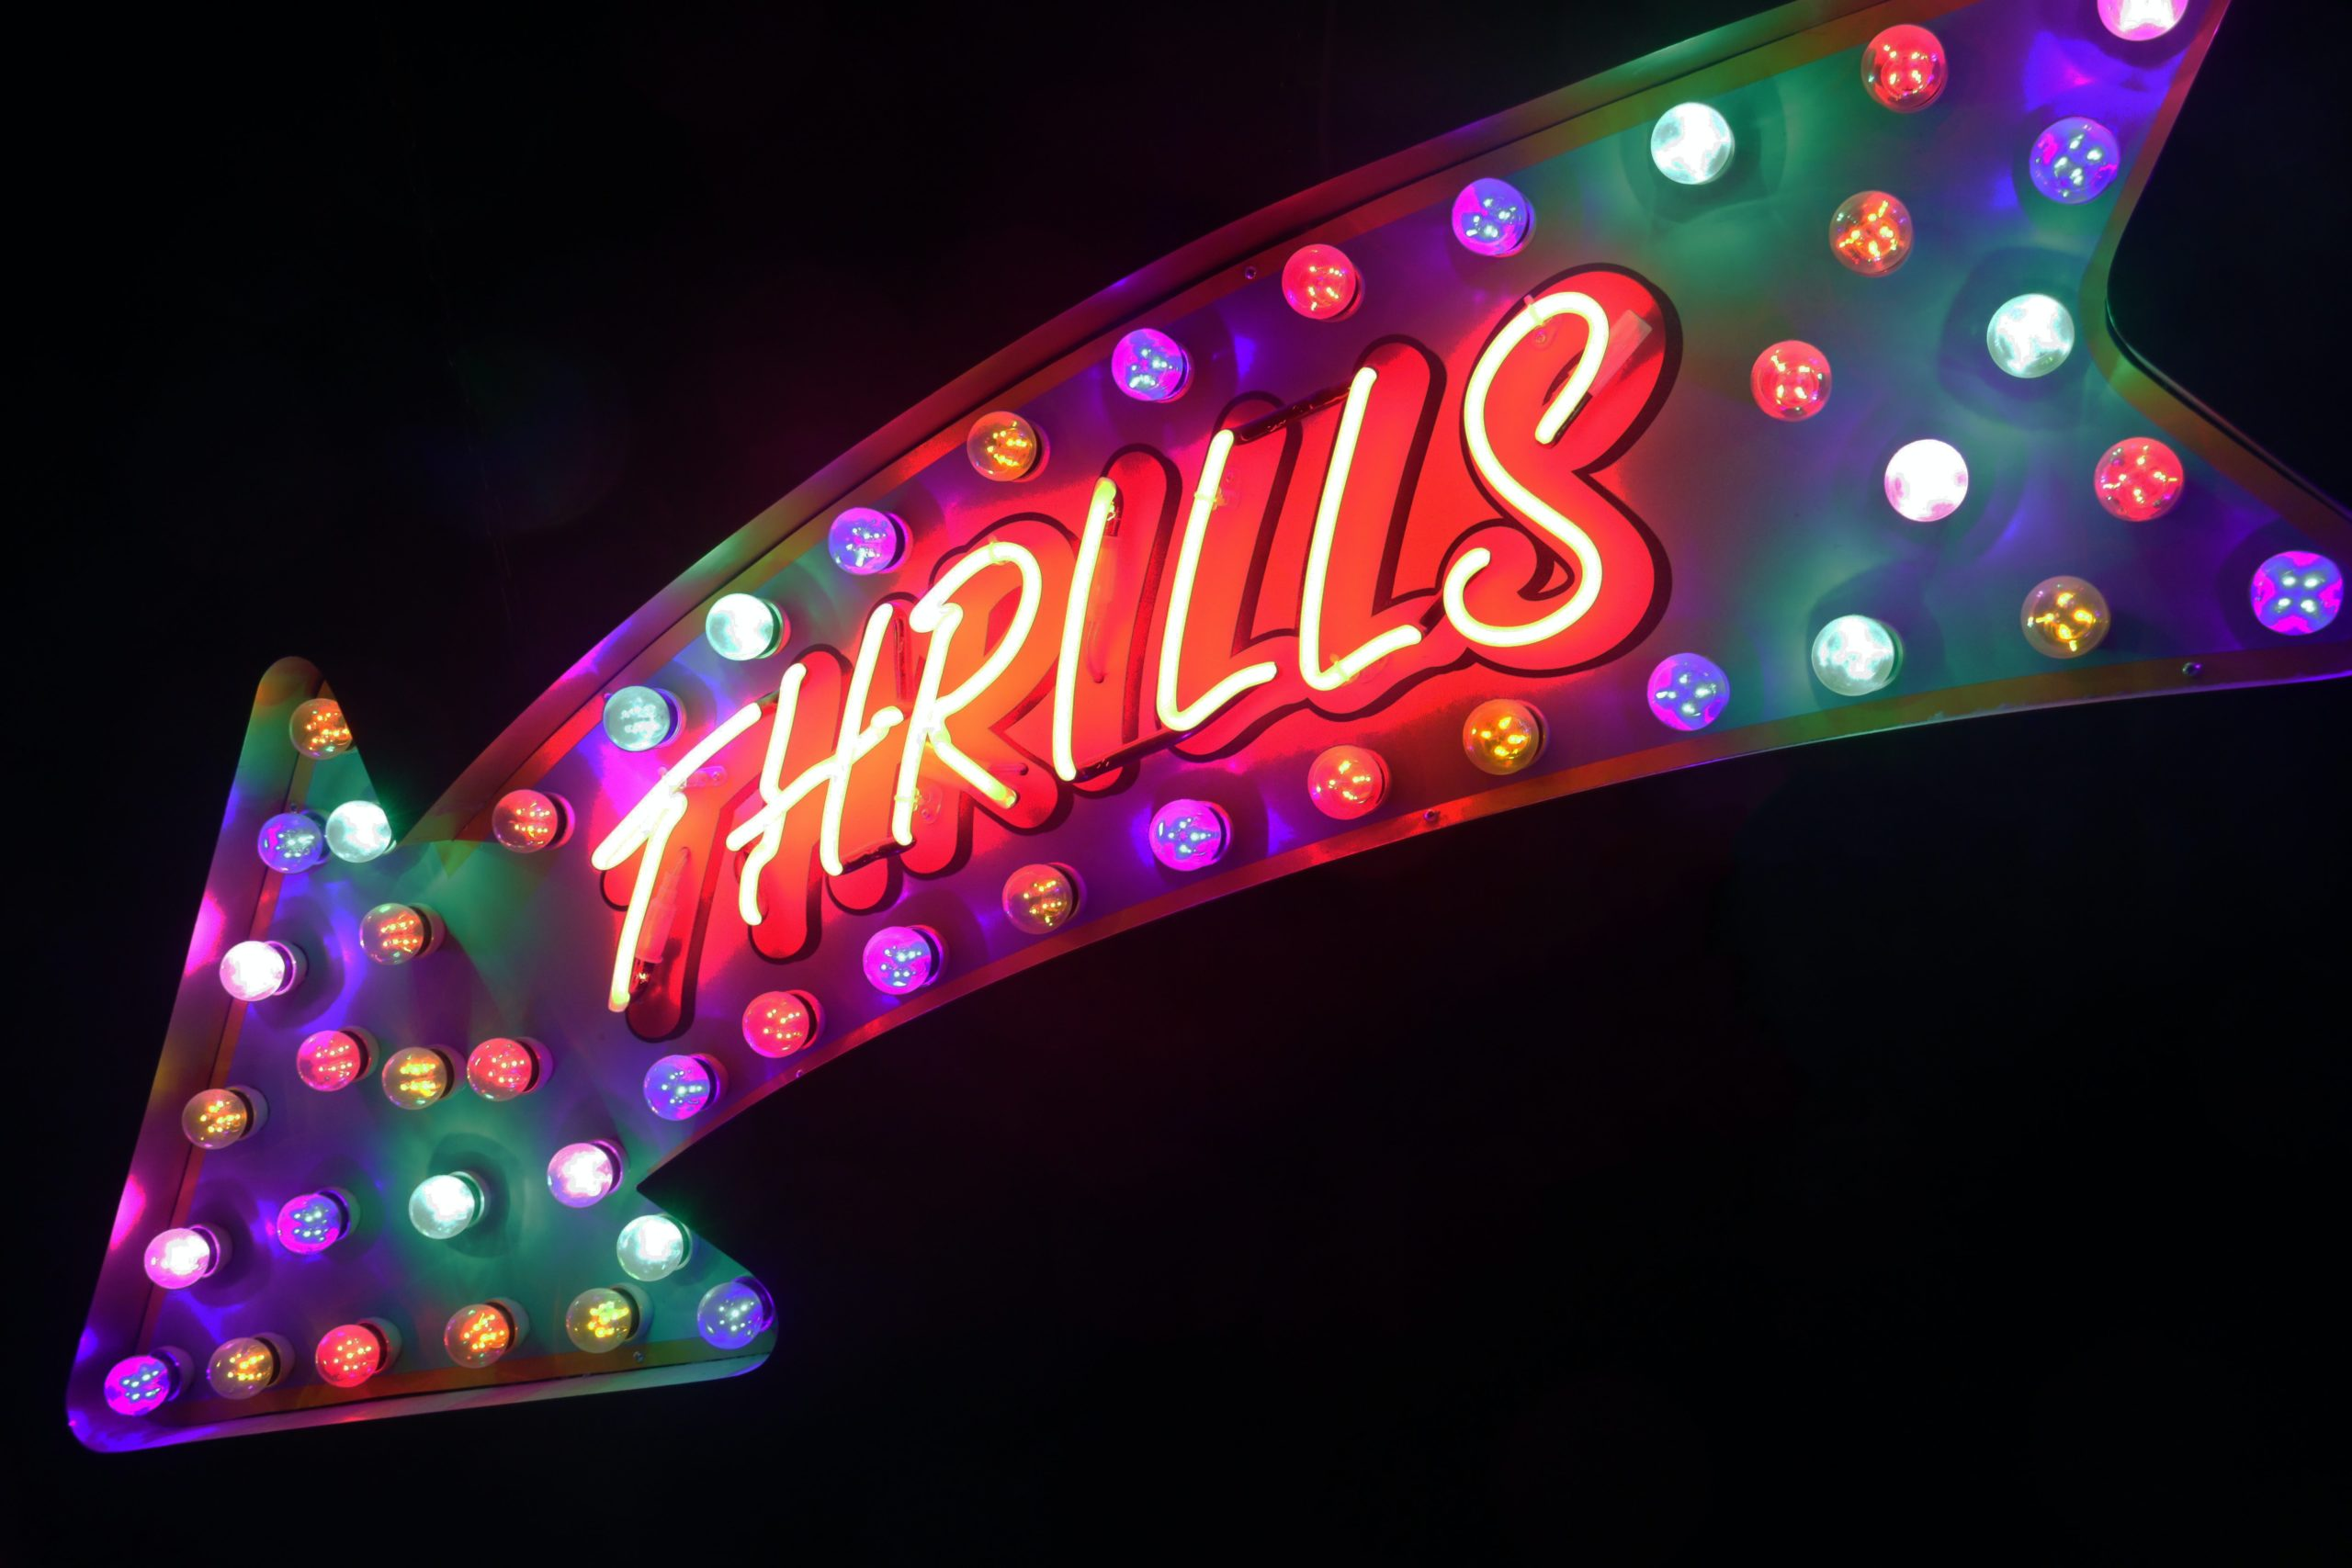 neon sign that says Thrills in an arrow.